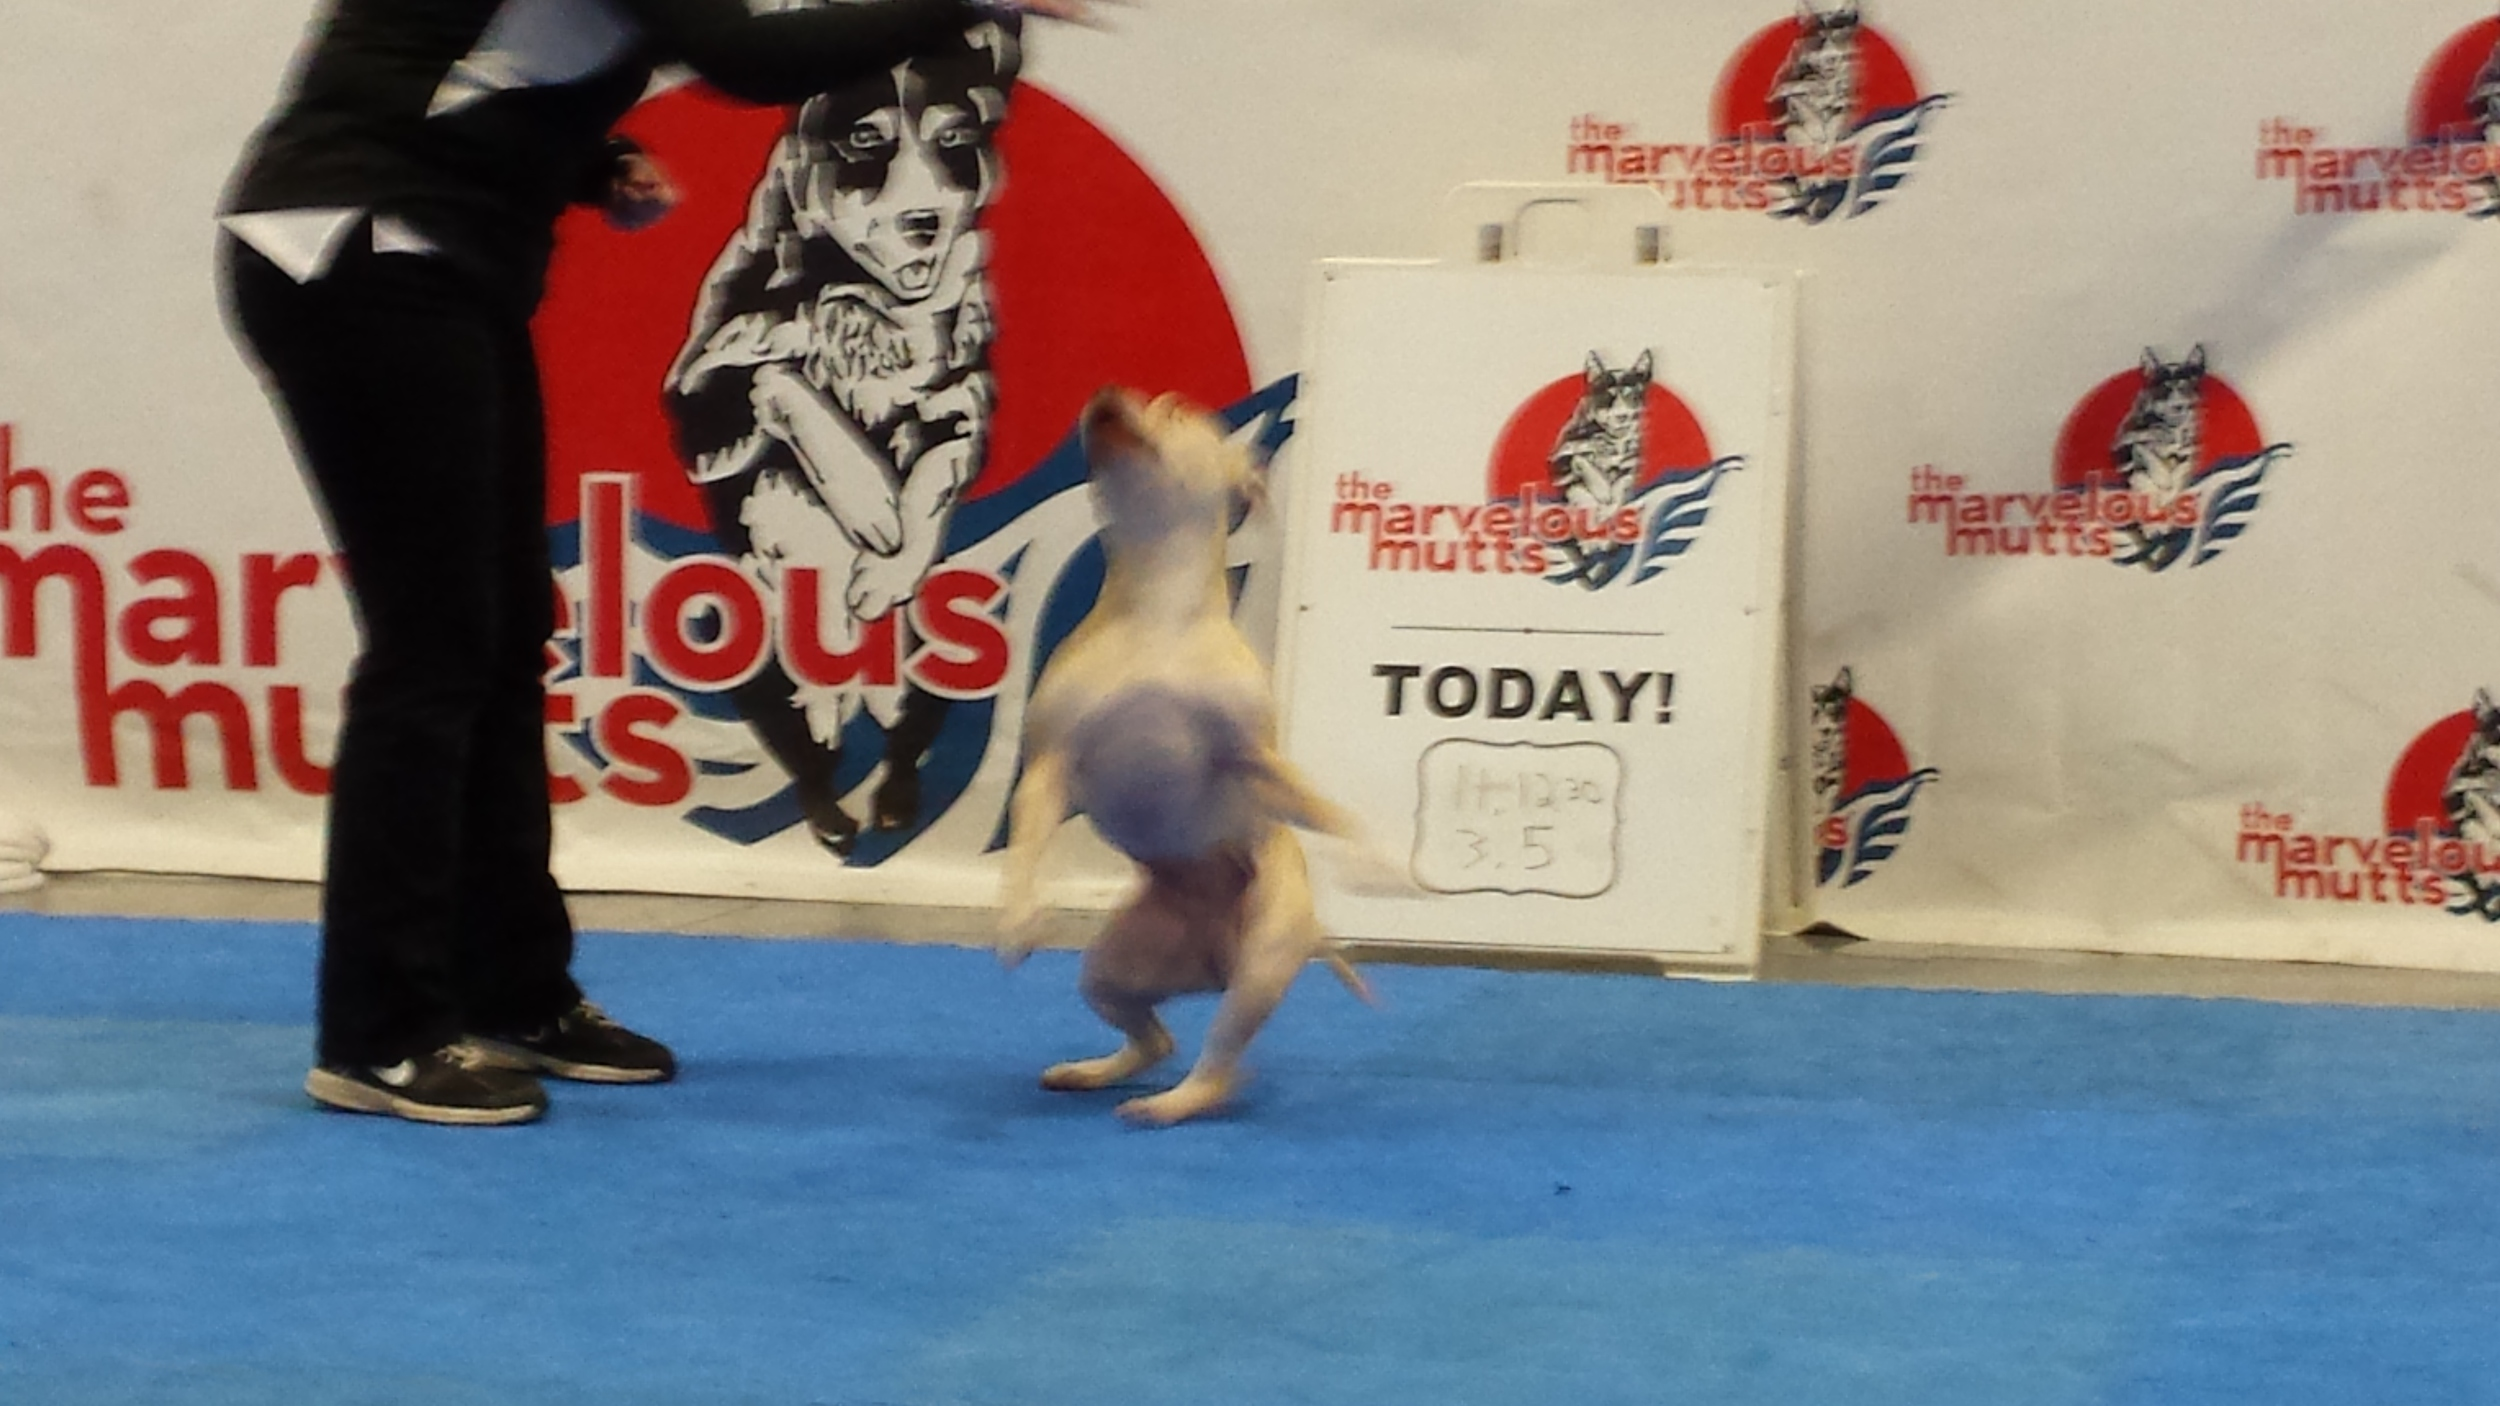 Here is one of The Marvelous Mutts performing at the SuperPetExpo.